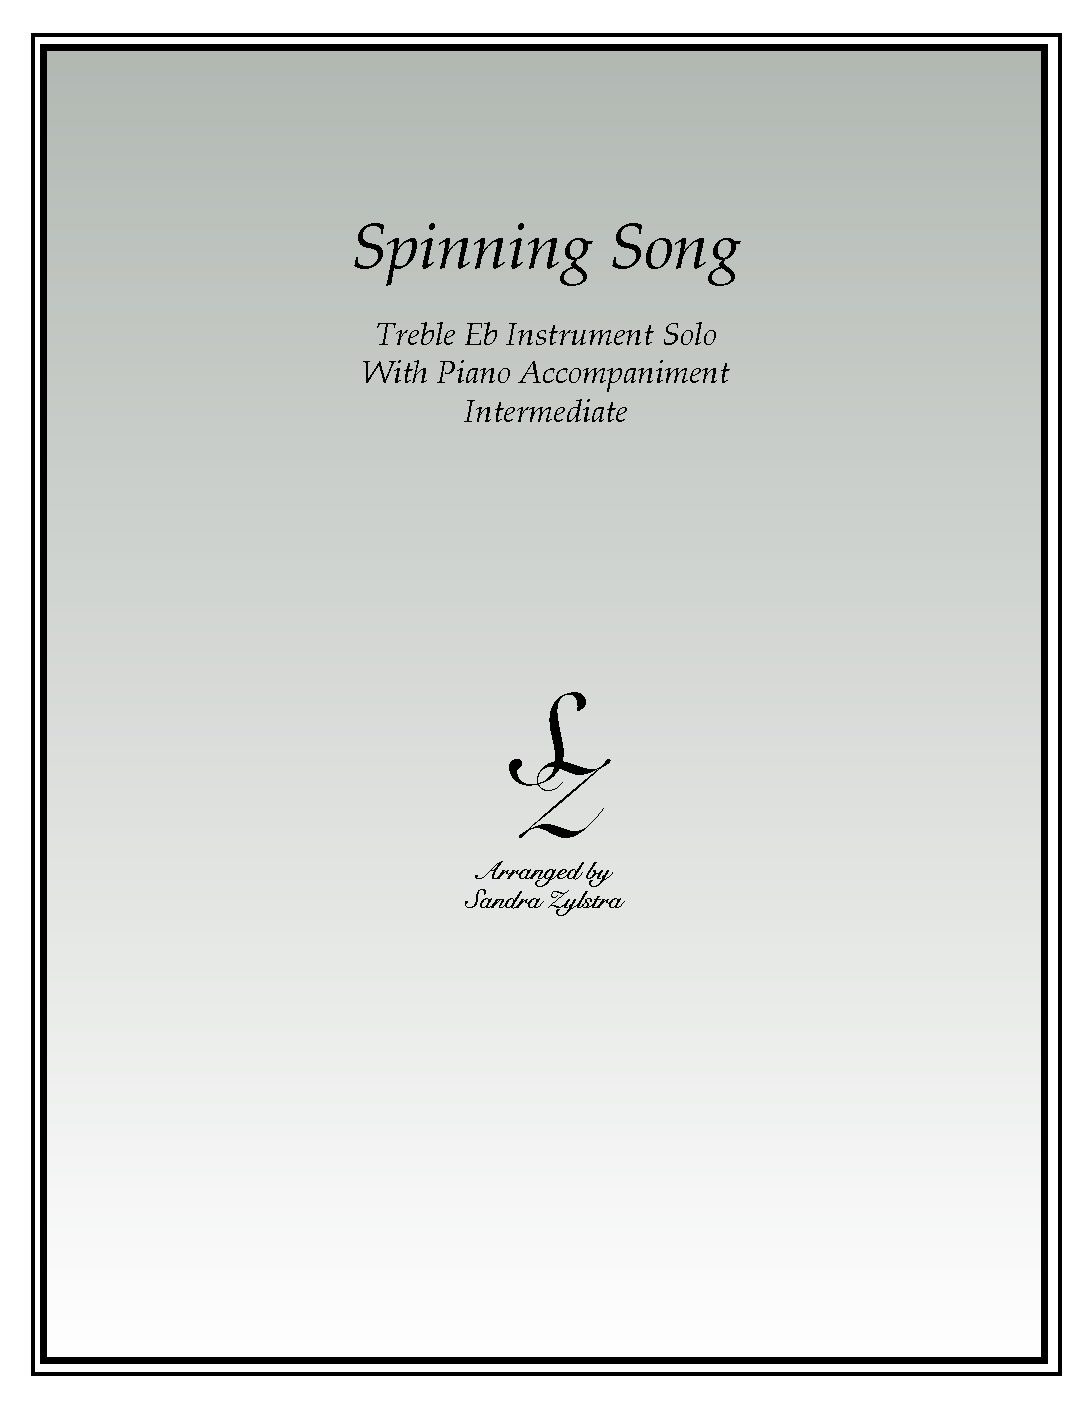 Spinning Song -Treble Eb Instrument Solo